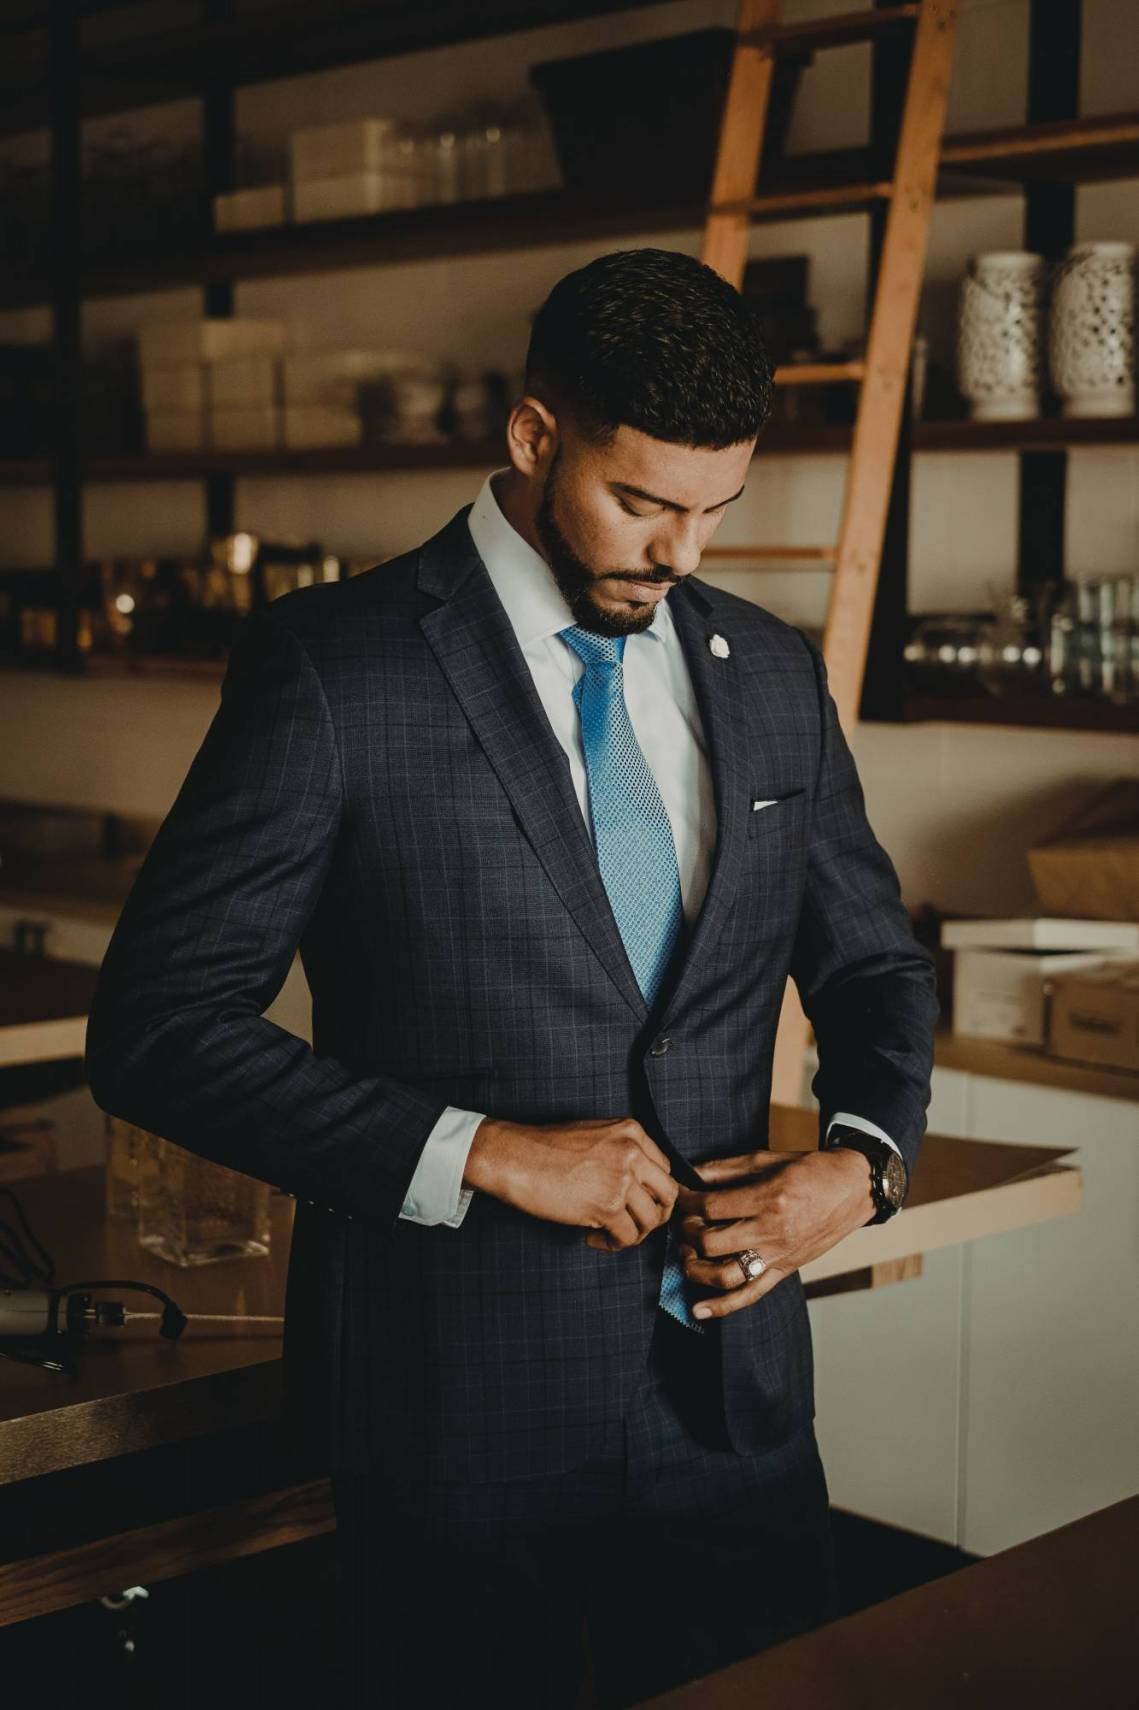 Best Suits 2019: The Top 3 Suits You Must Own